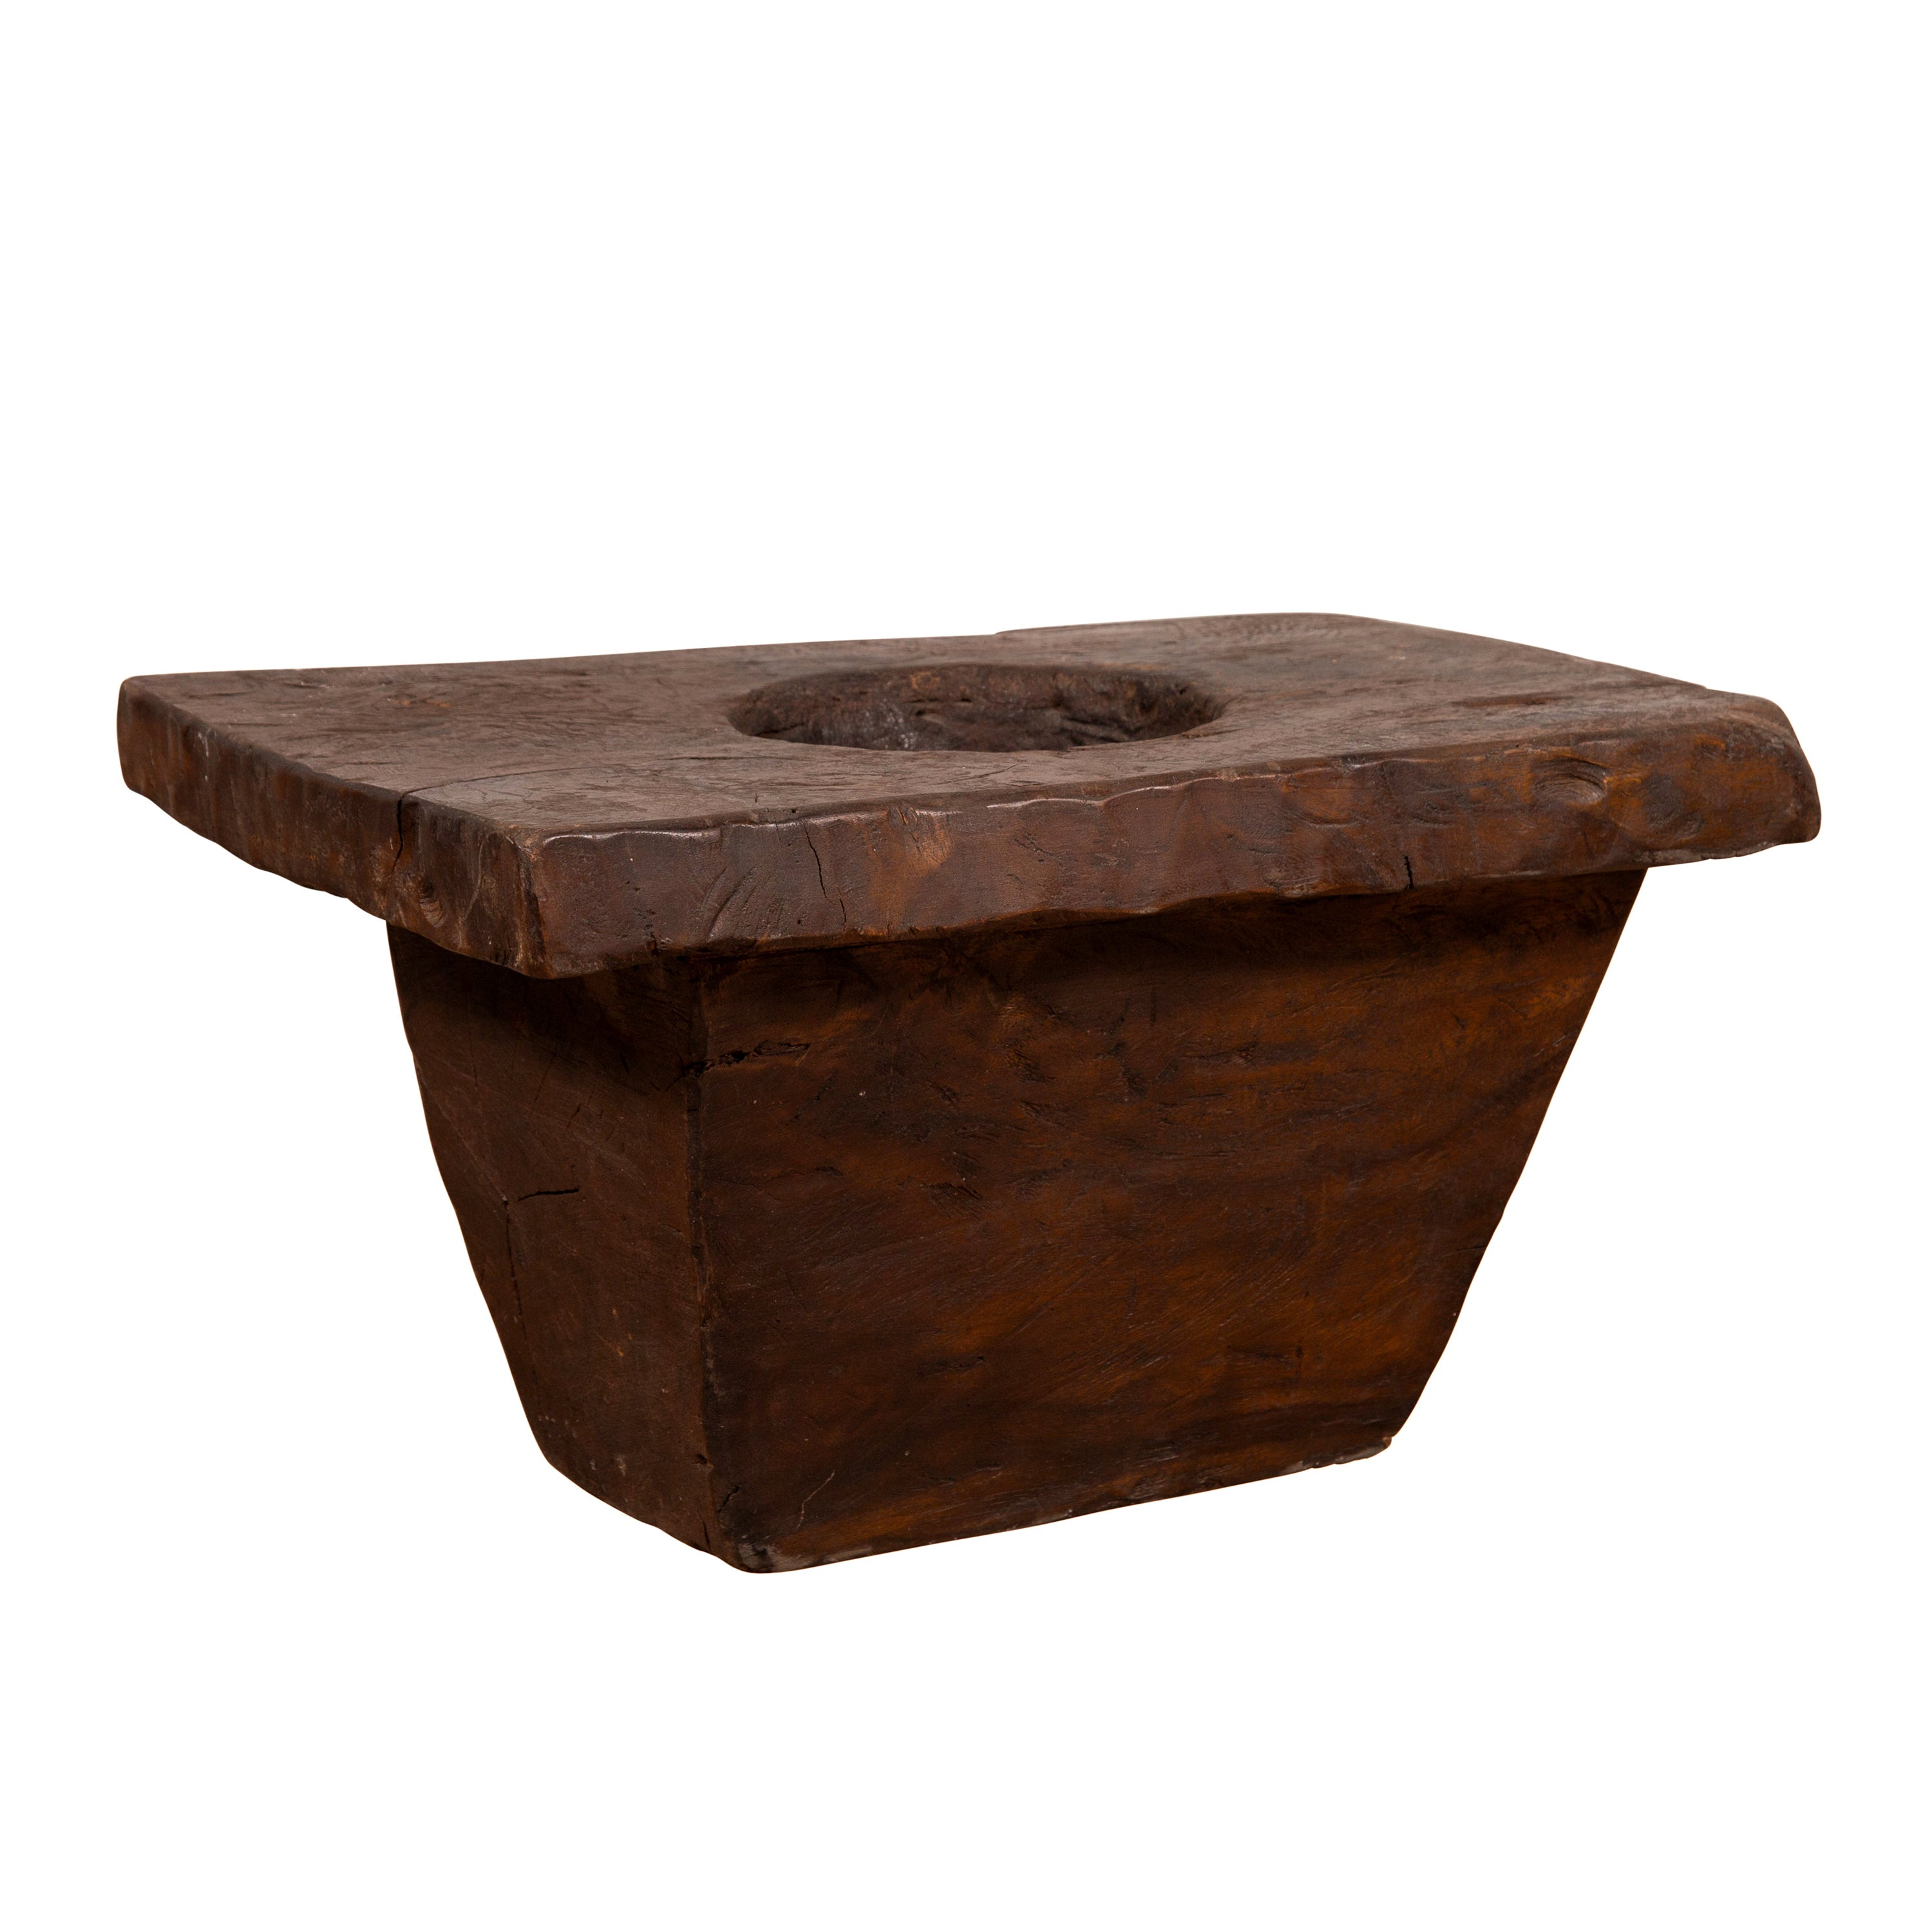 Rustic Antique Indonesian Brown Wooden Planter from the Early 20th Century